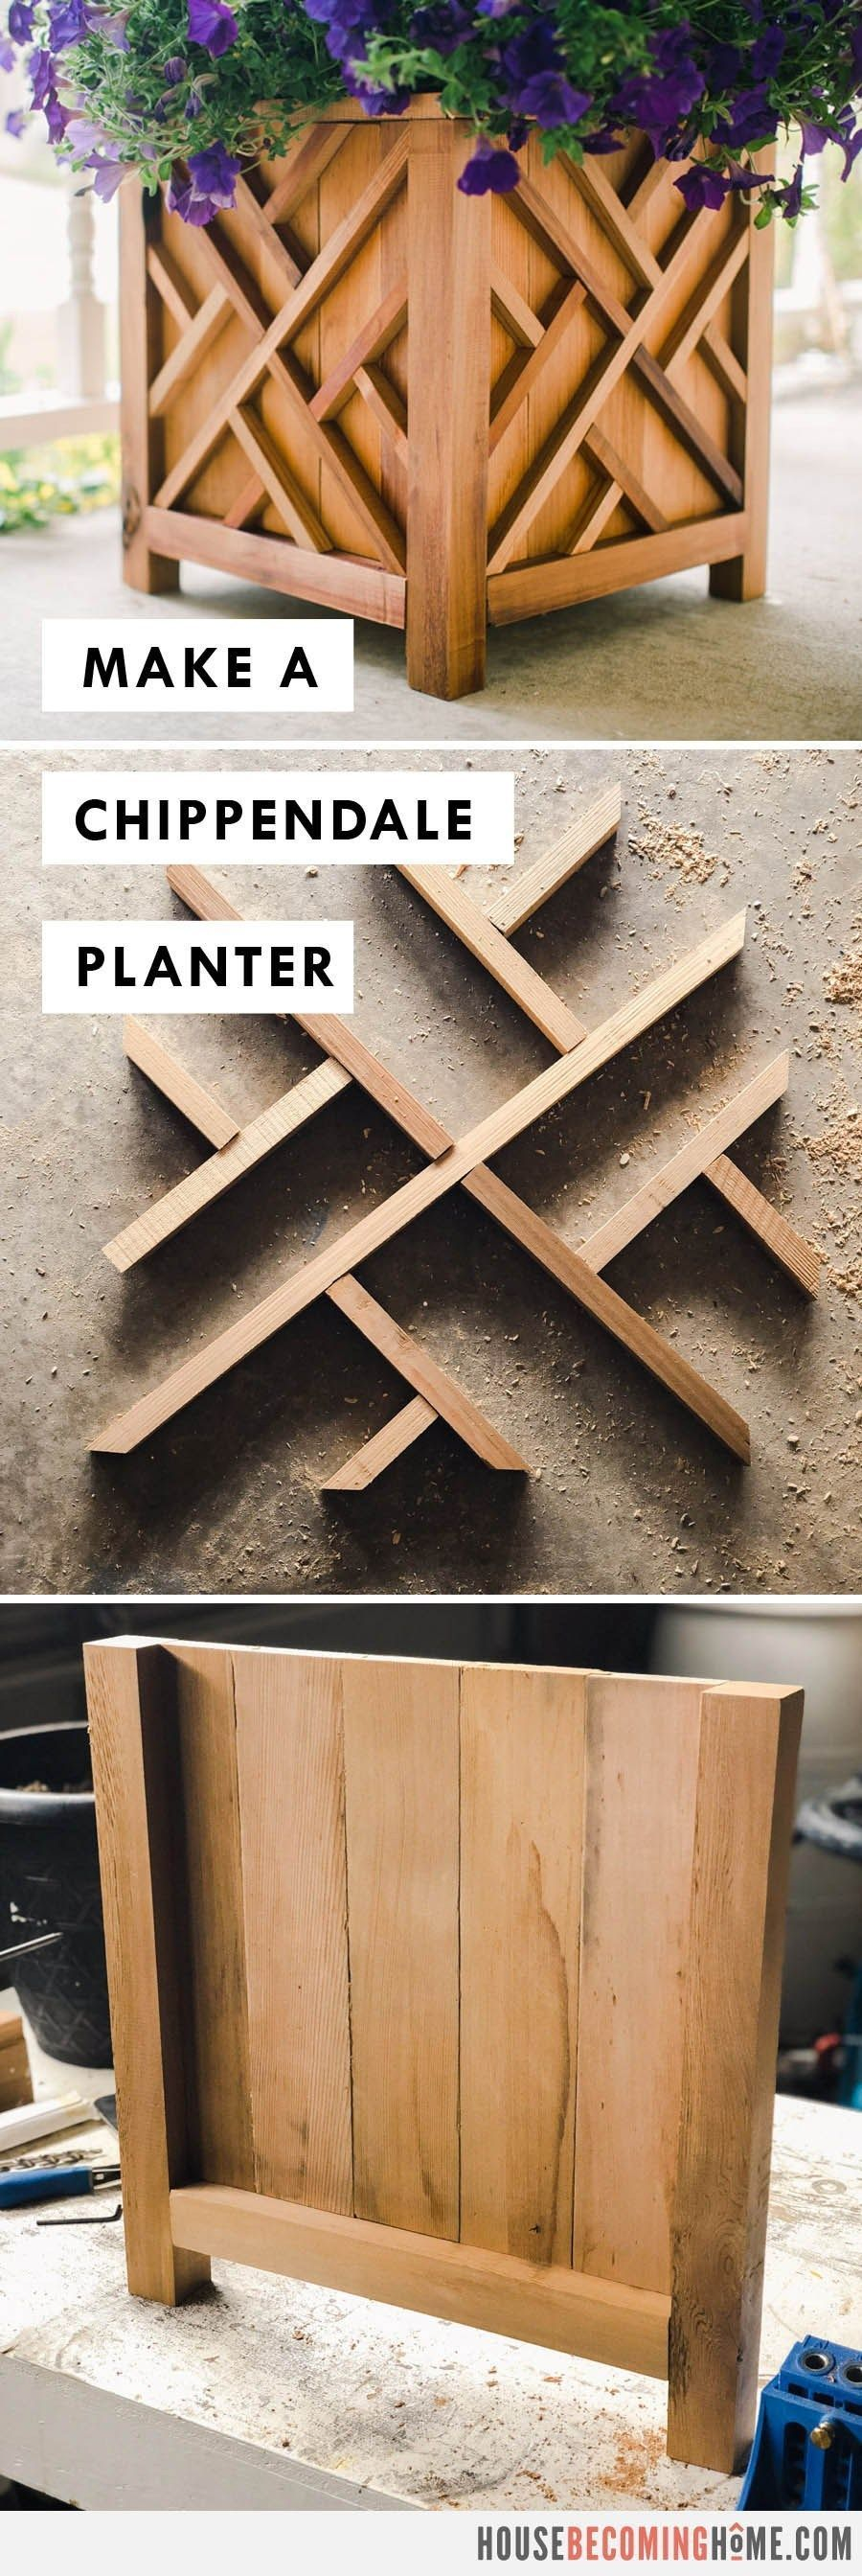 Photo of Benefits of Using Woodworking Furniture Patterns | Woodworking Projects Plans Diy Furniture |…